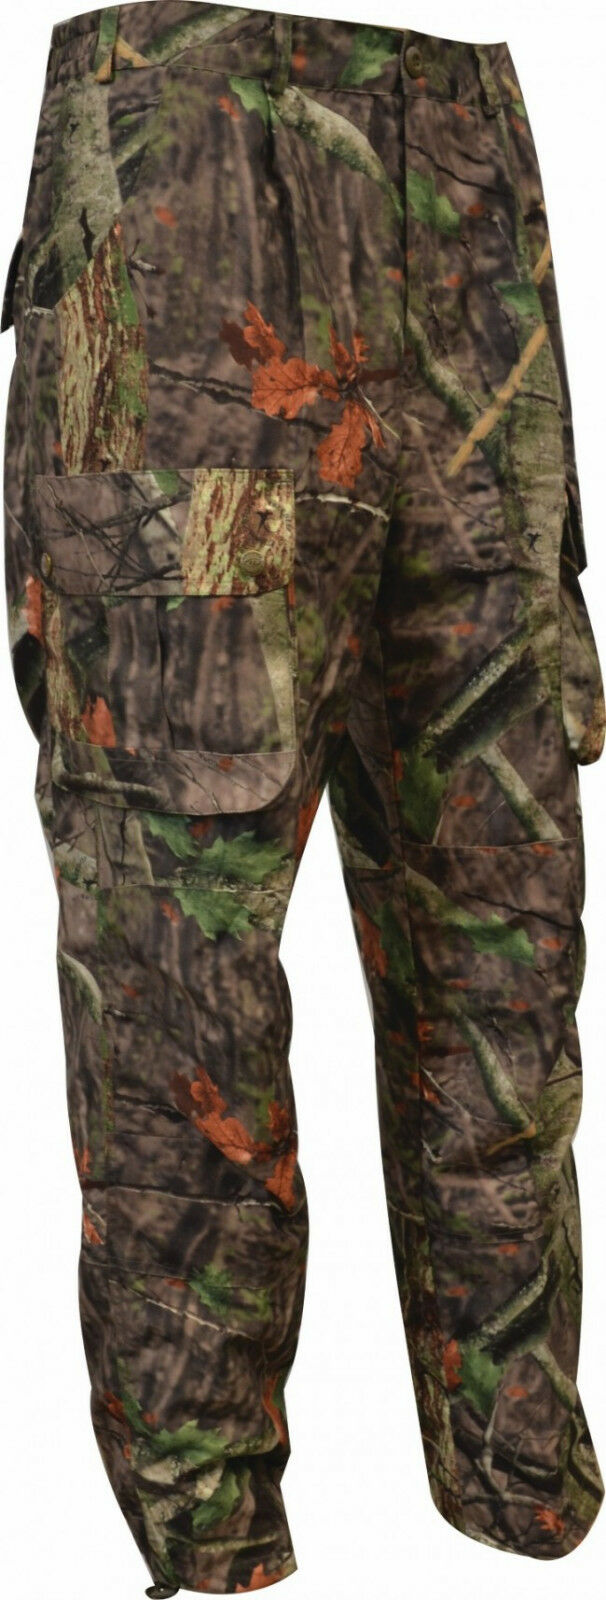 Tree Deep Rexmoor Trousers 100% Waterproof Breathable Outdoor Hunting   Fishing